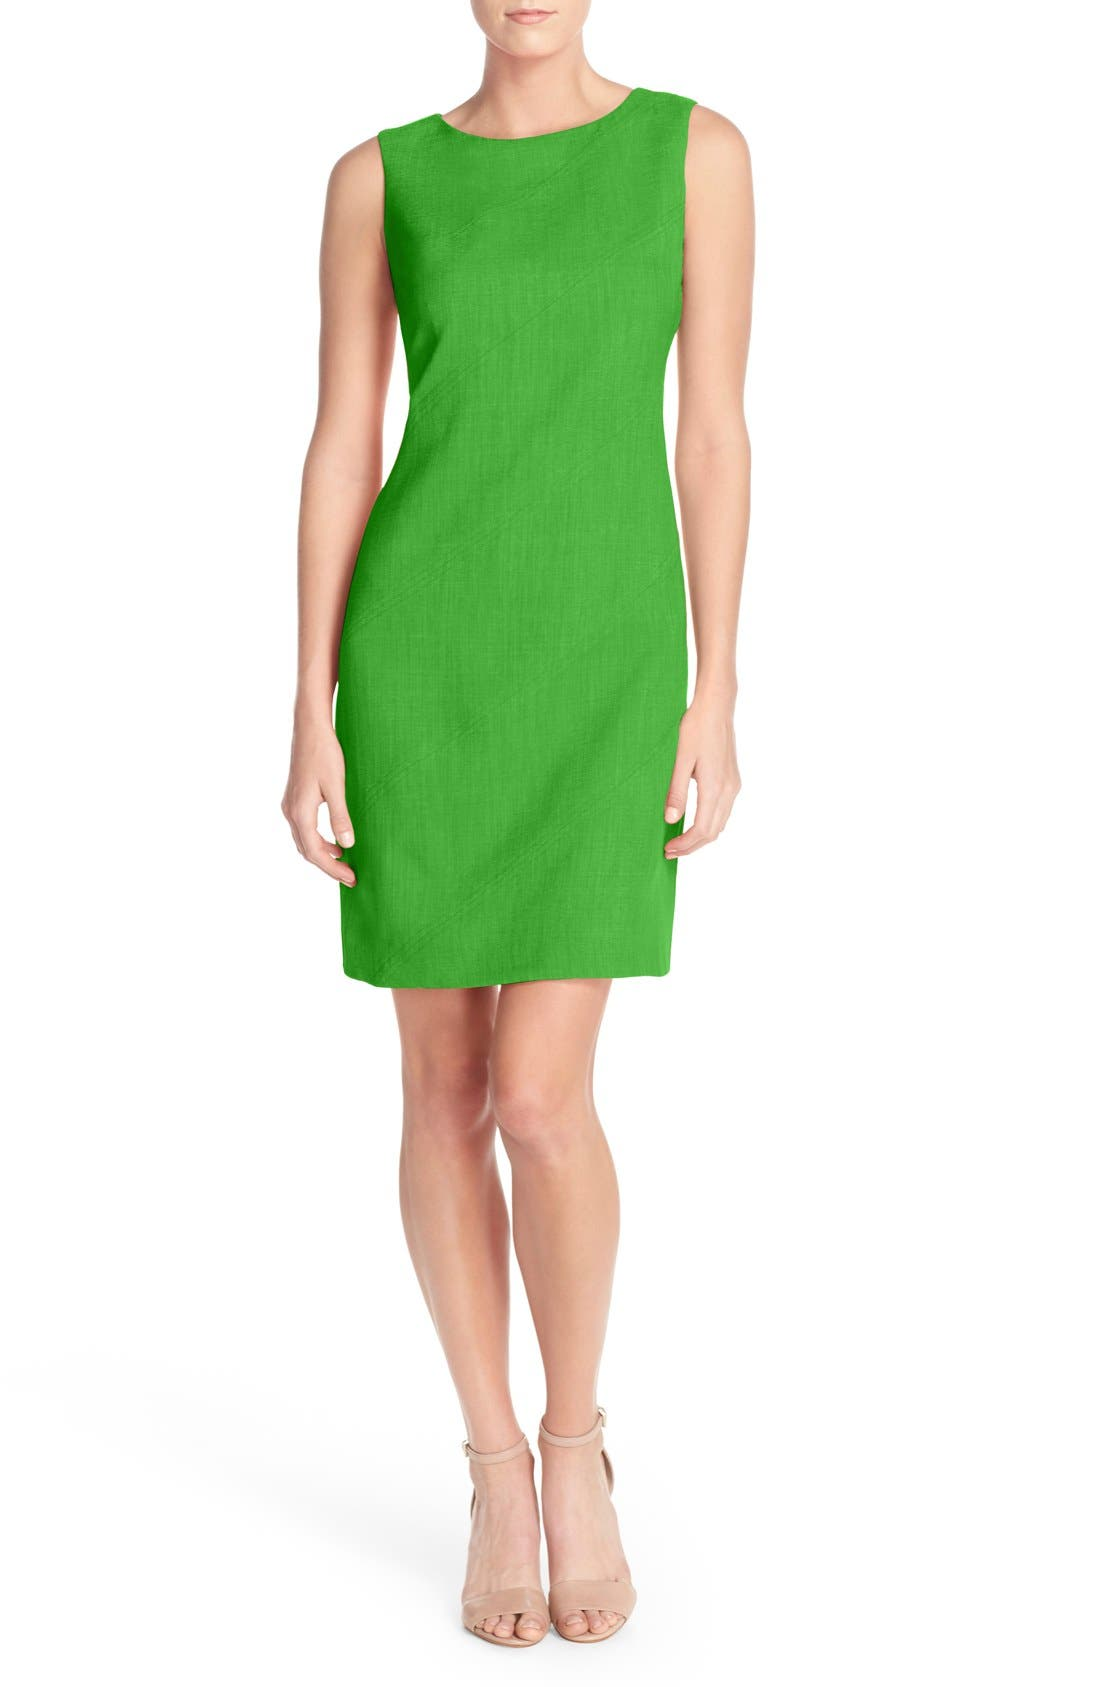 Alternate Image 3  - Ellen Tracy Seam Sheath Dress (Regular & Petite)